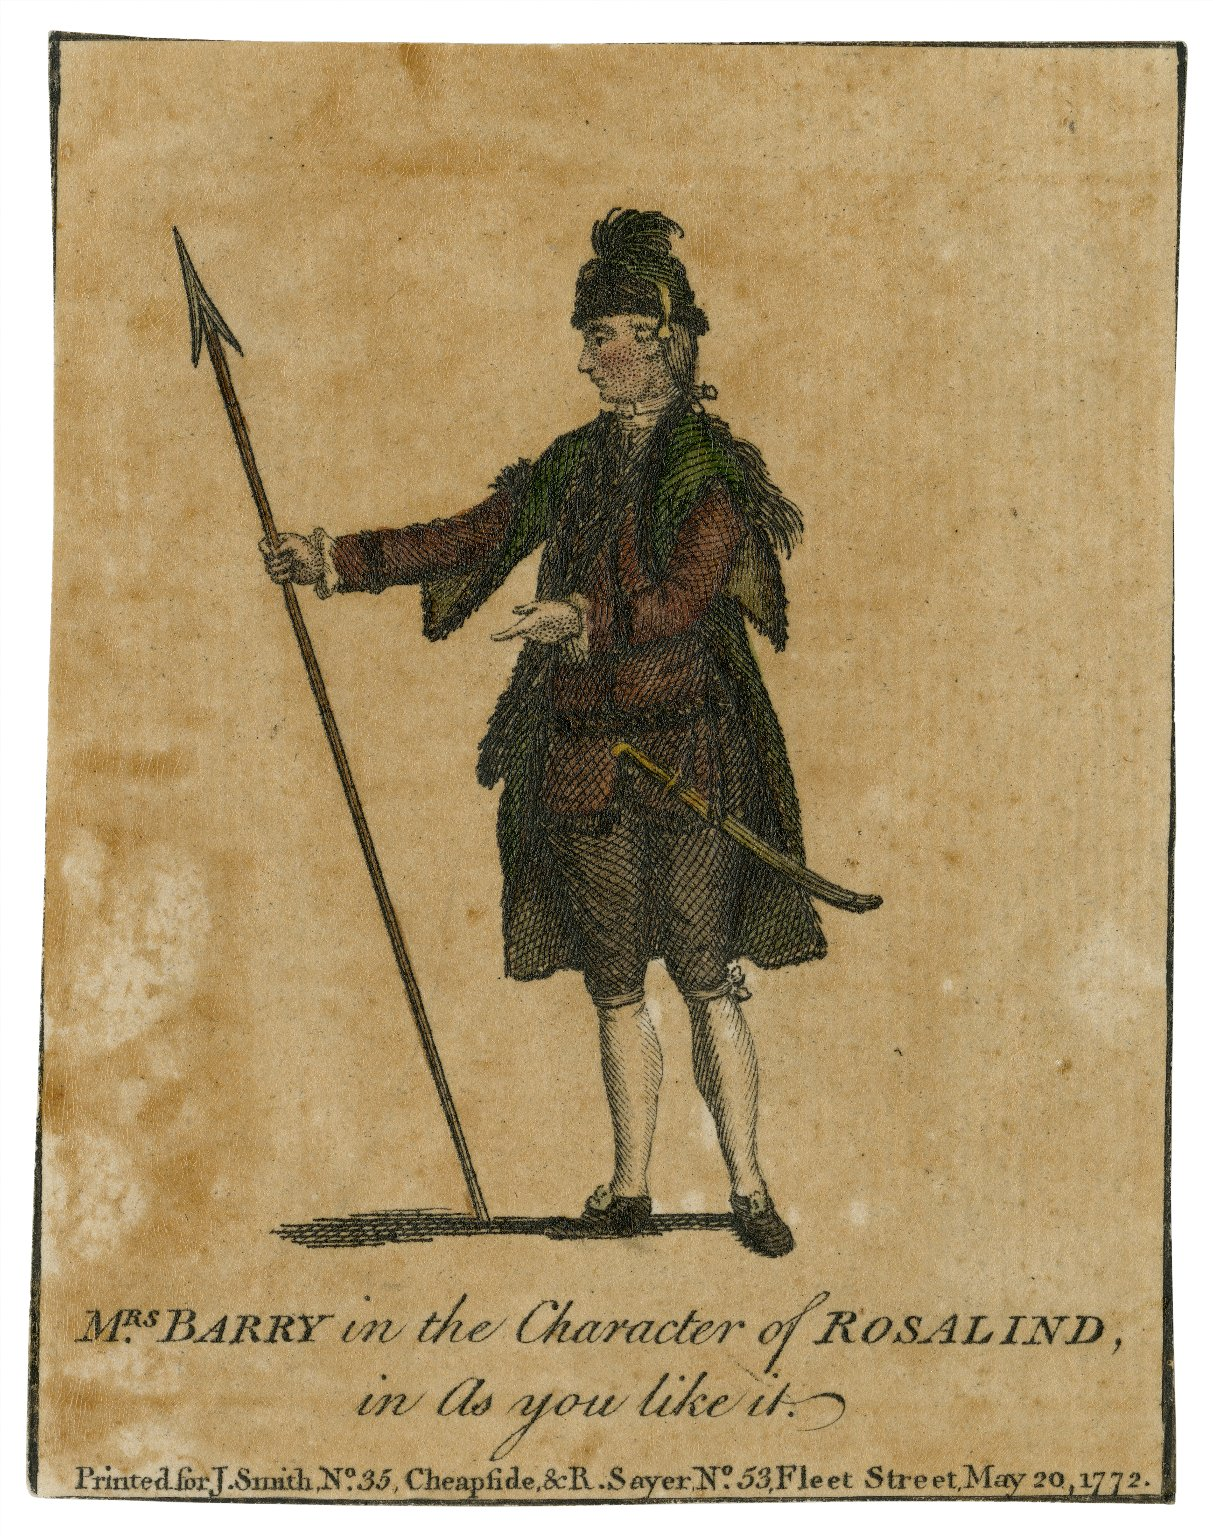 Mrs. Barry in the character of Rosalind in As you like it [graphic].